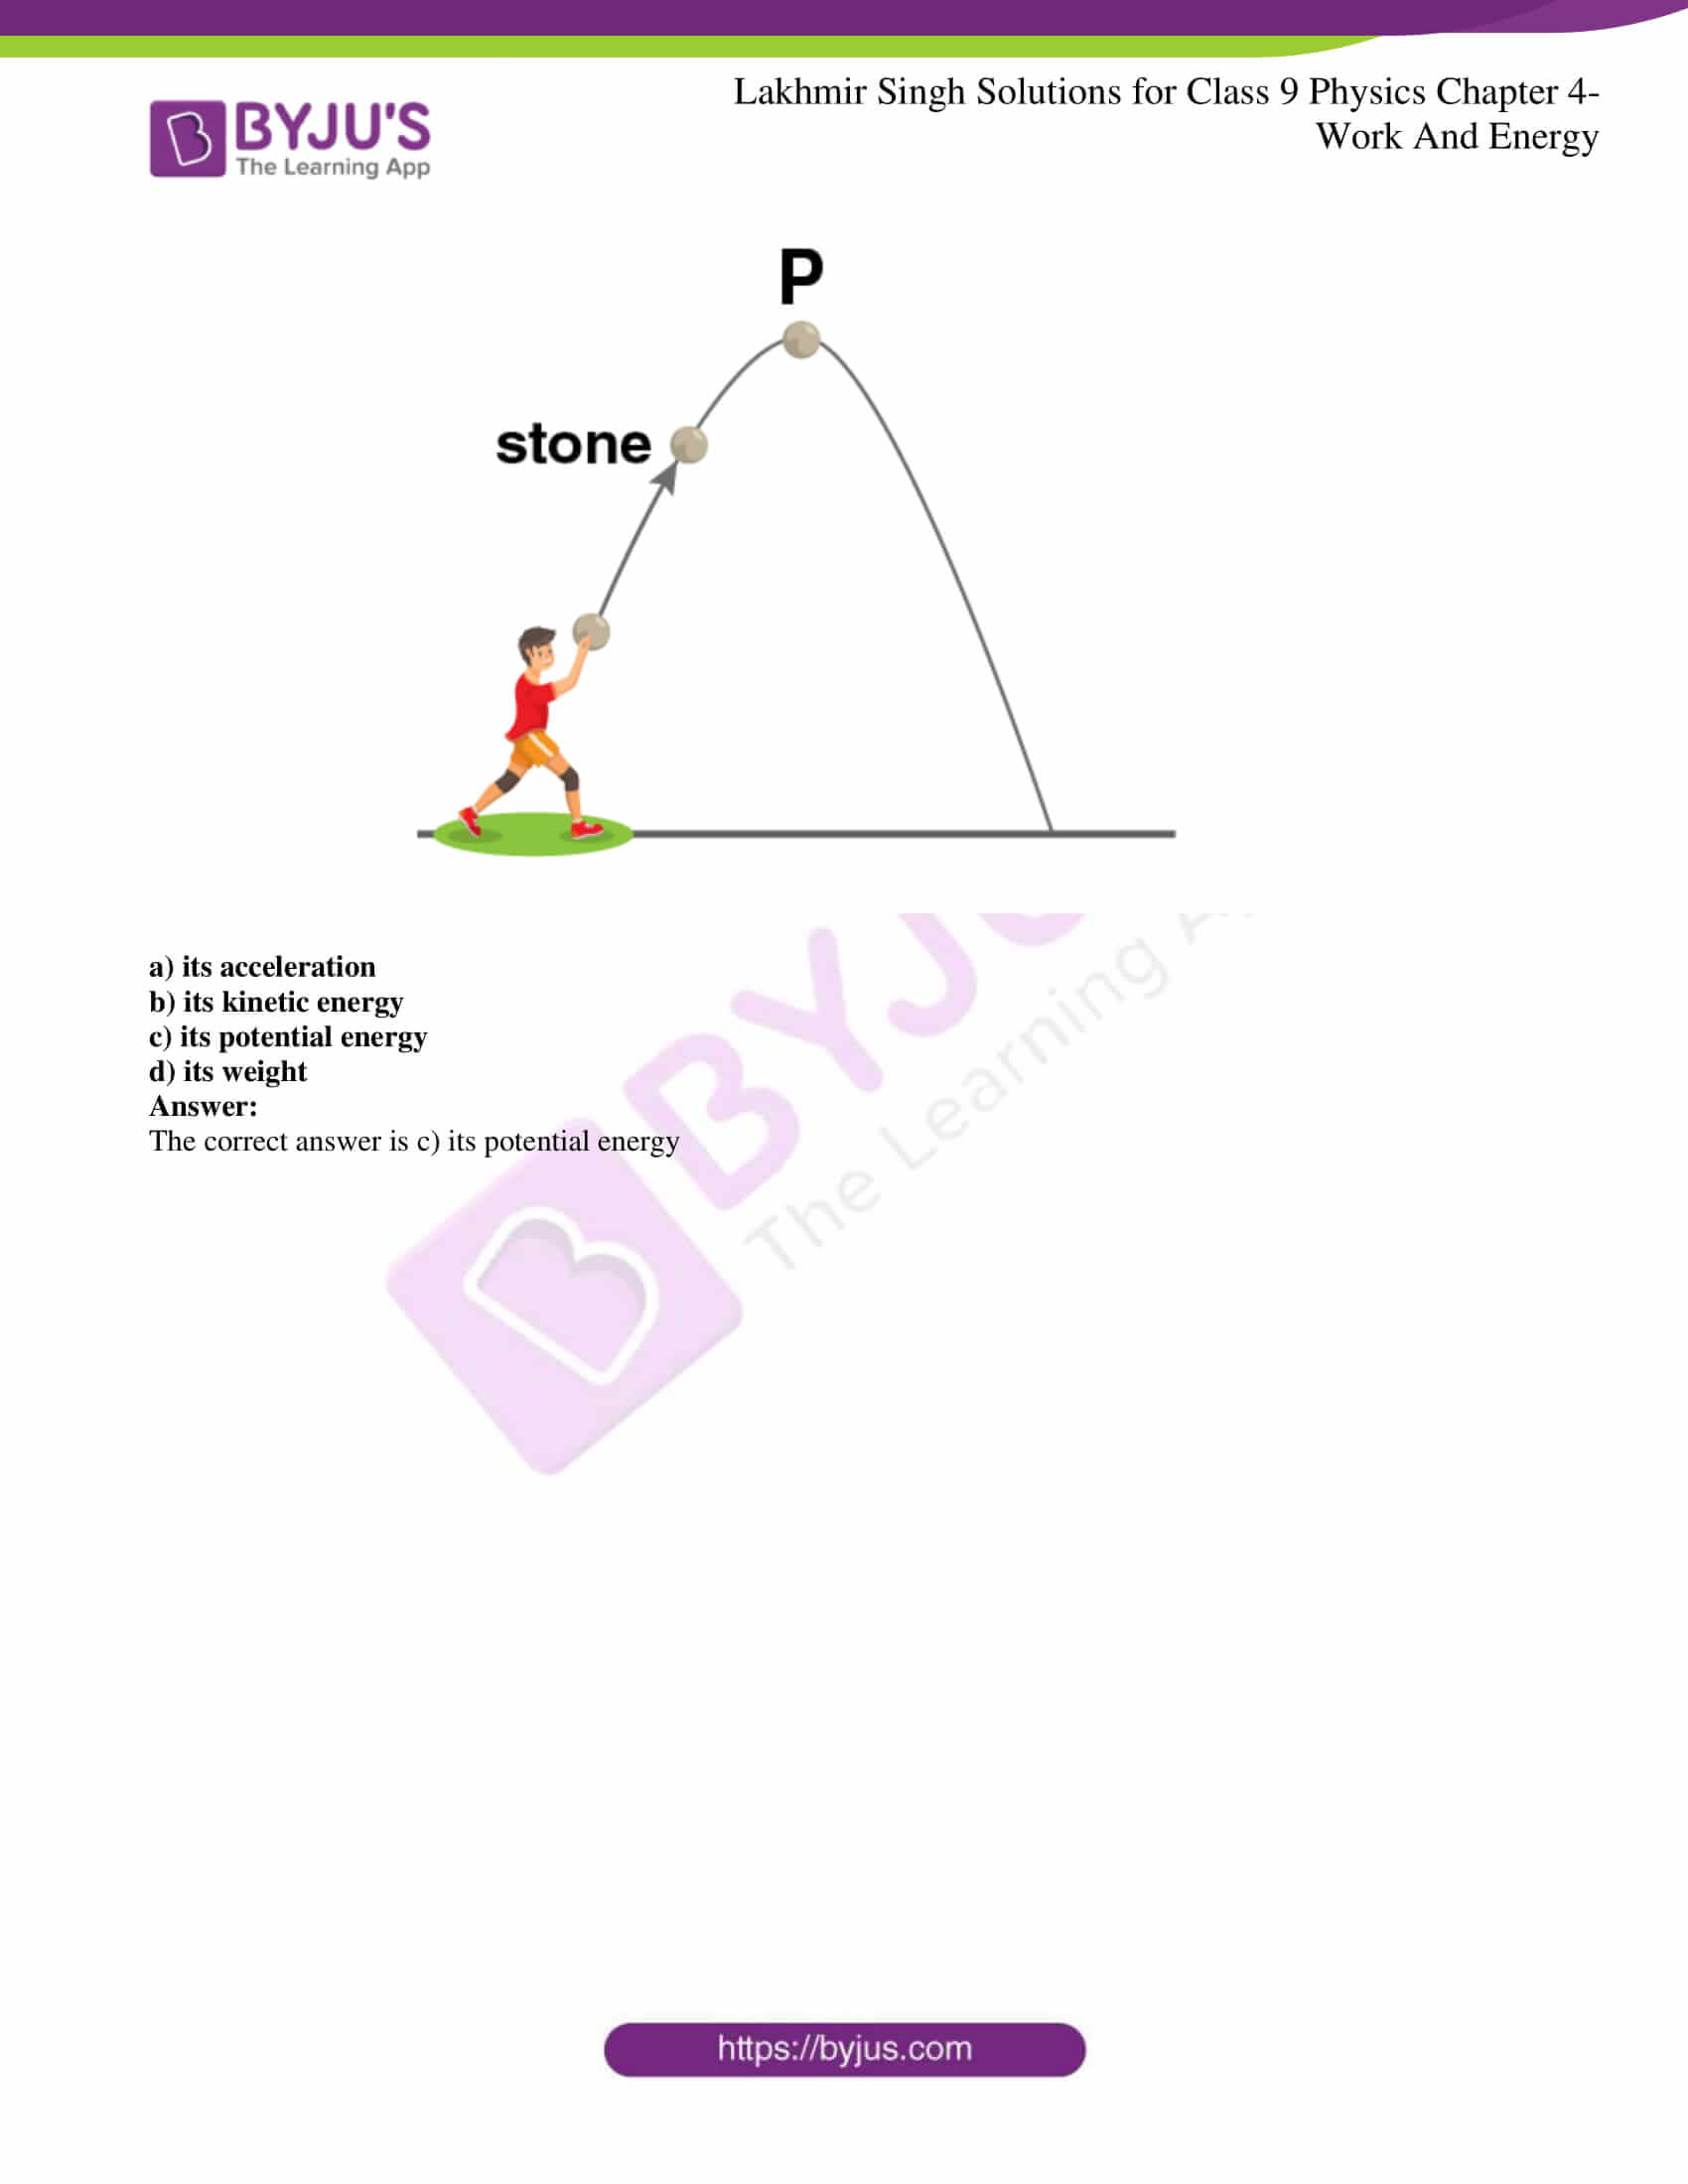 lakhmir singh solutions class 9 physics chapter 4 15